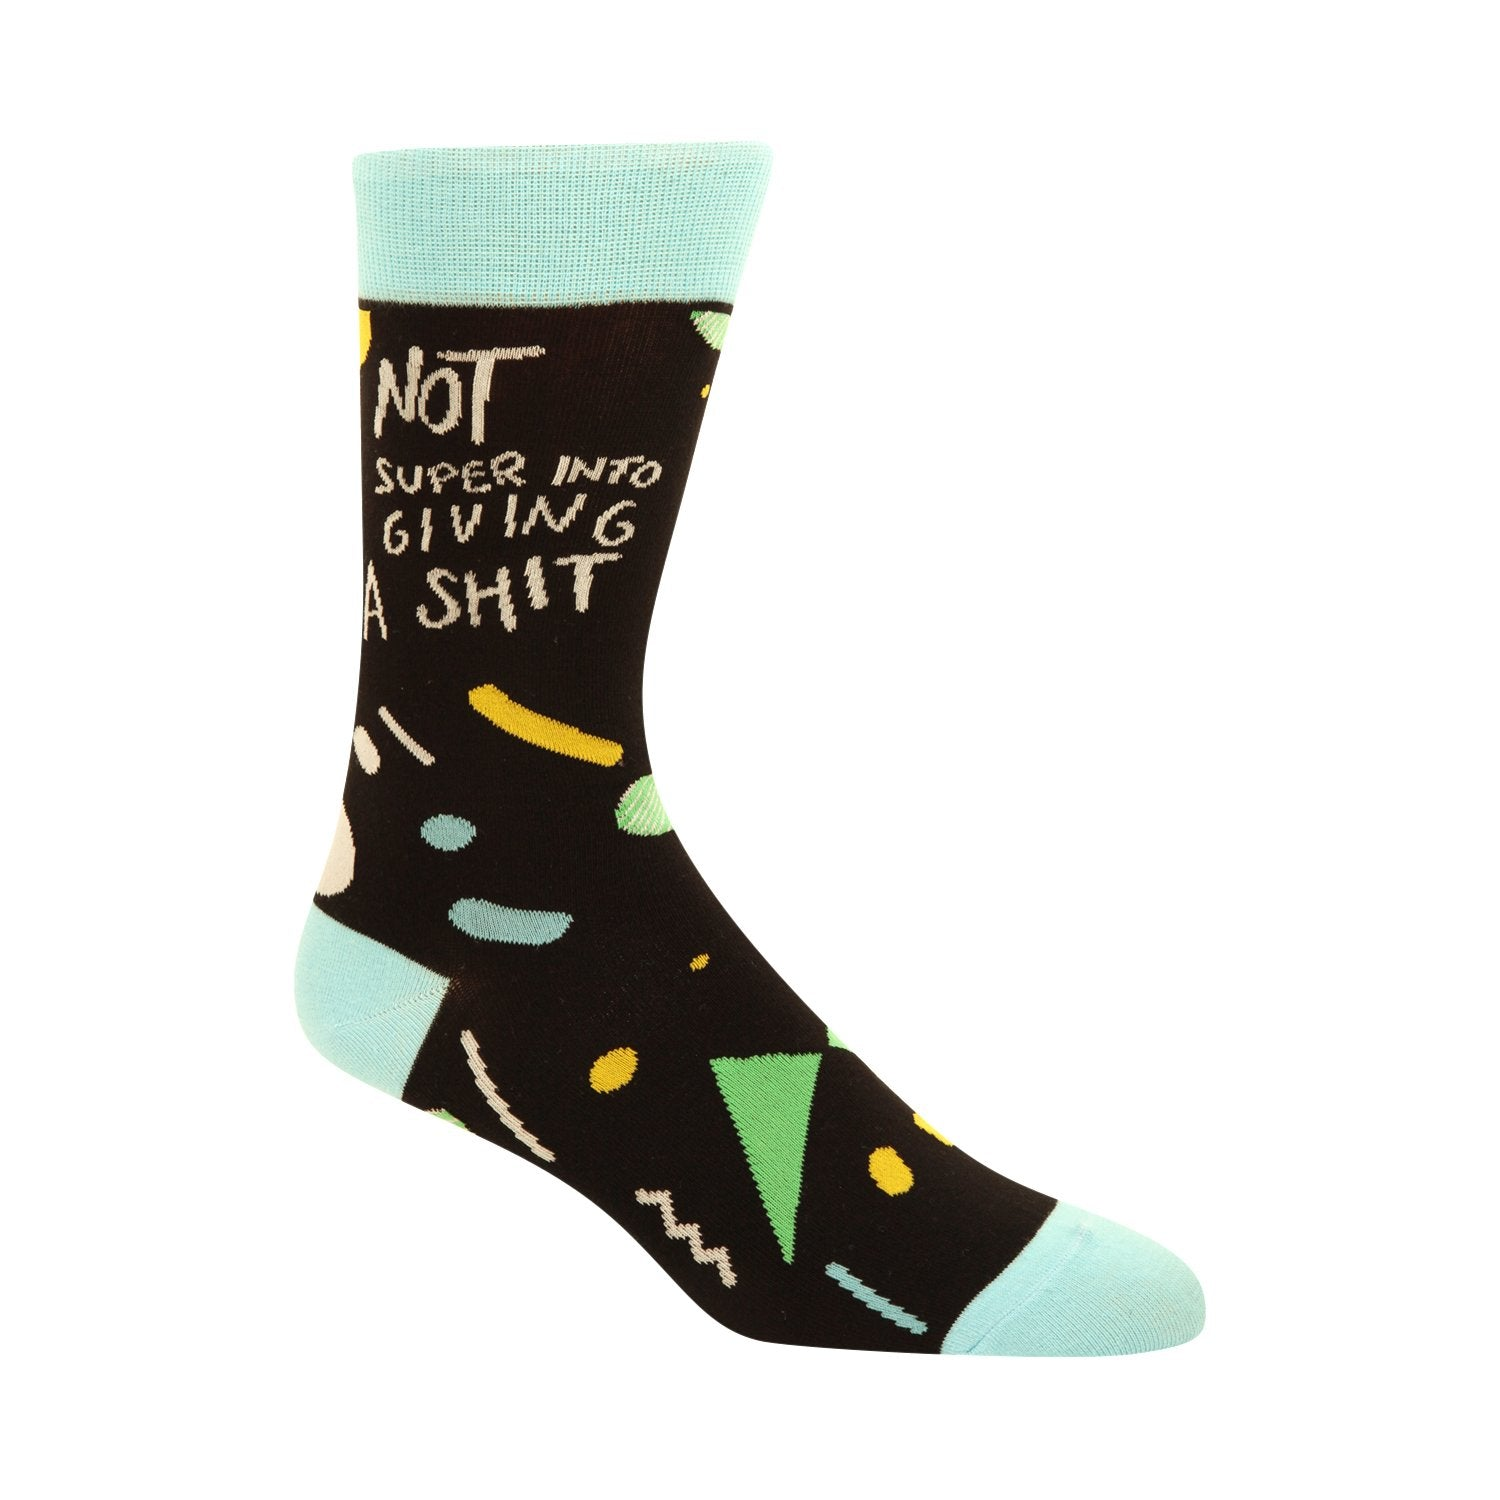 Not Super Into Giving A Shit Men's Socks